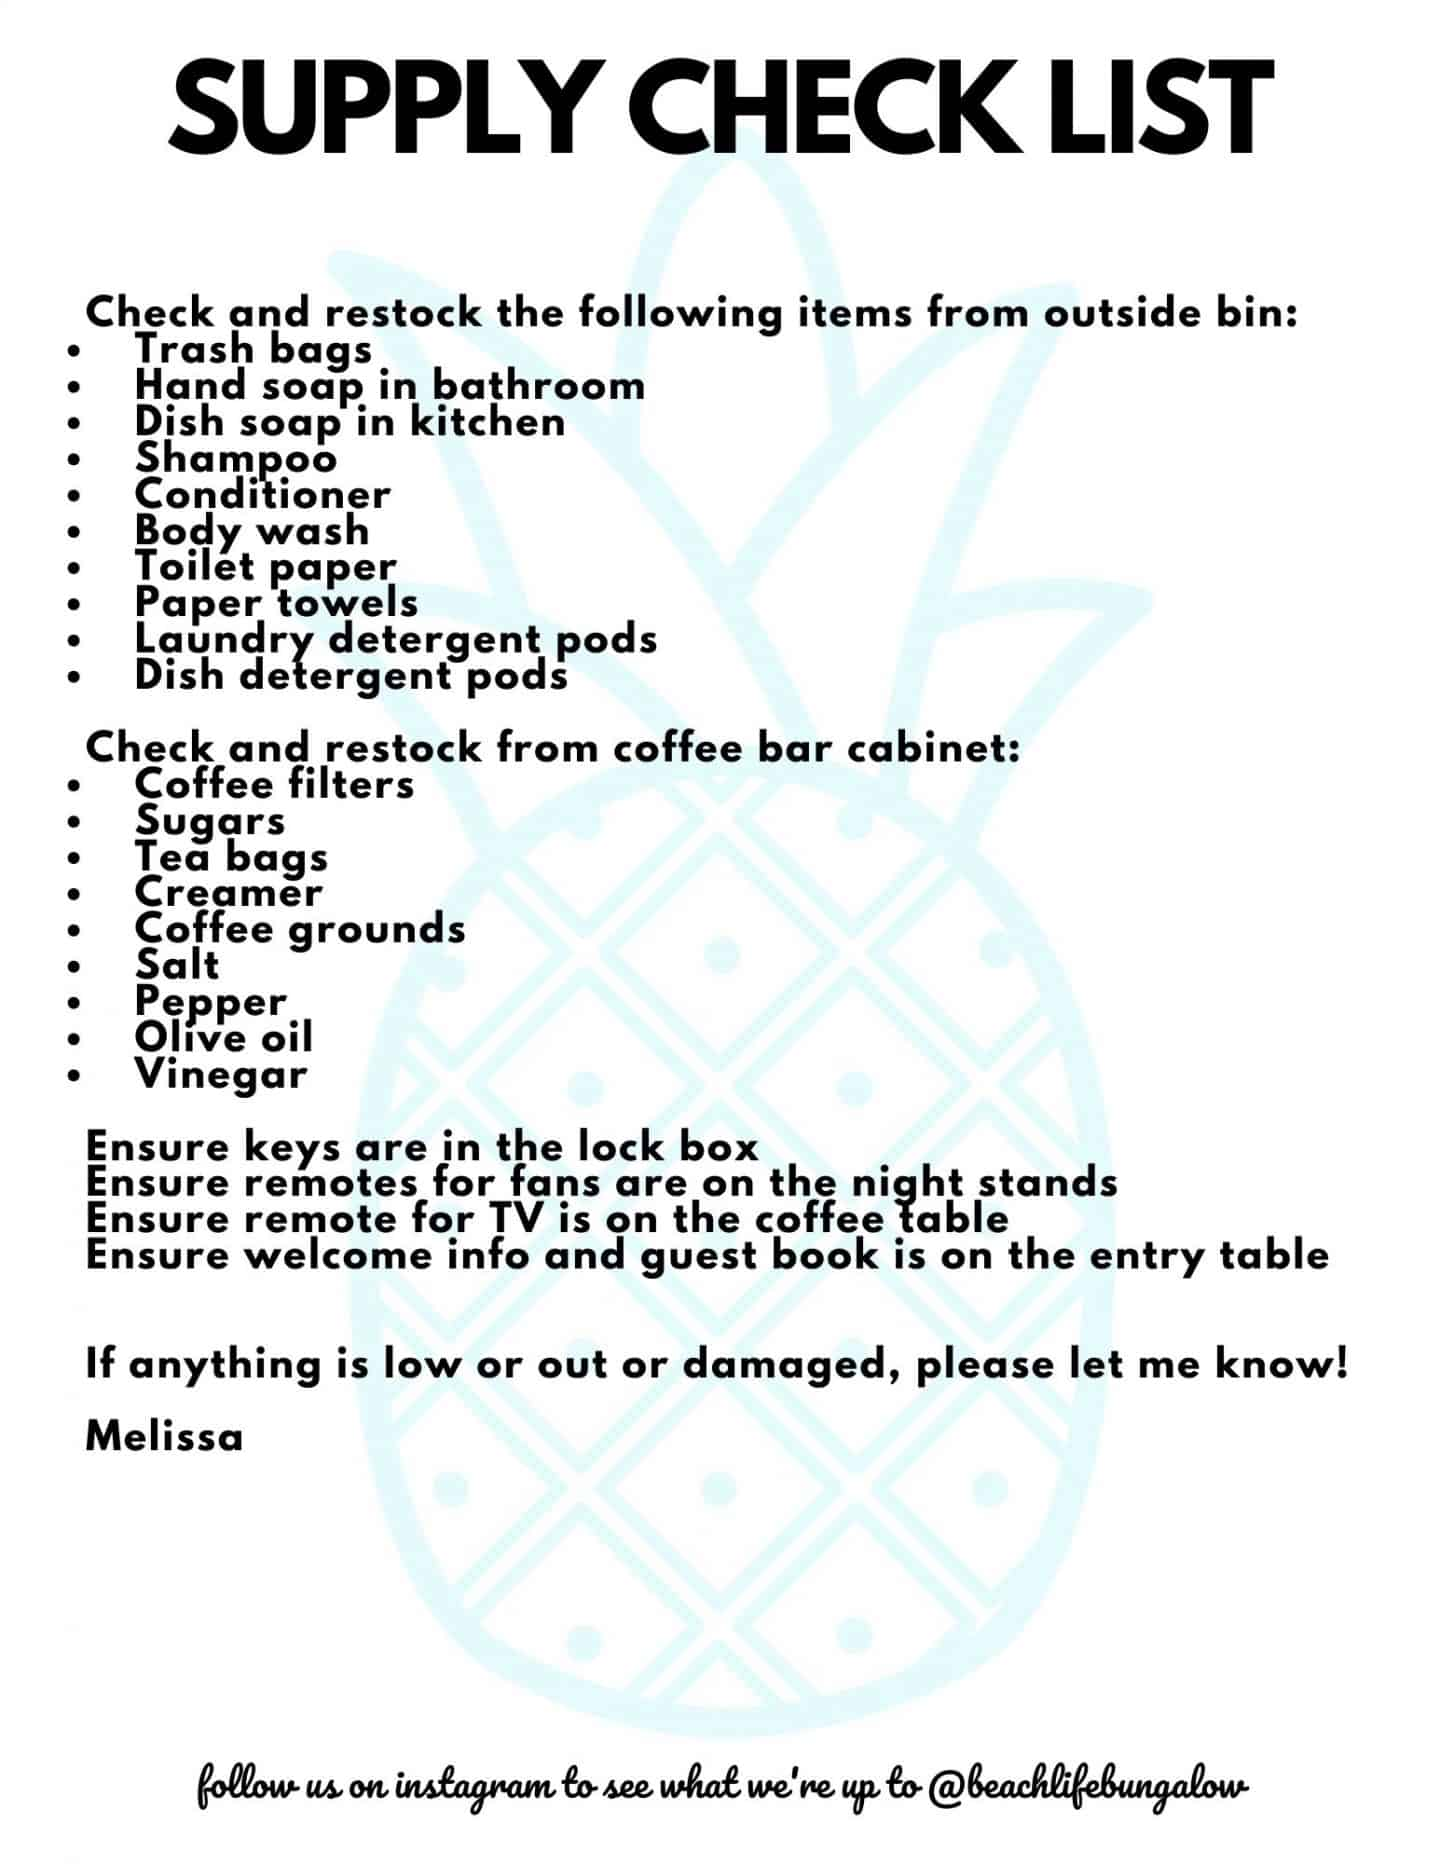 AirBnb Supply Checklist For Cleaners